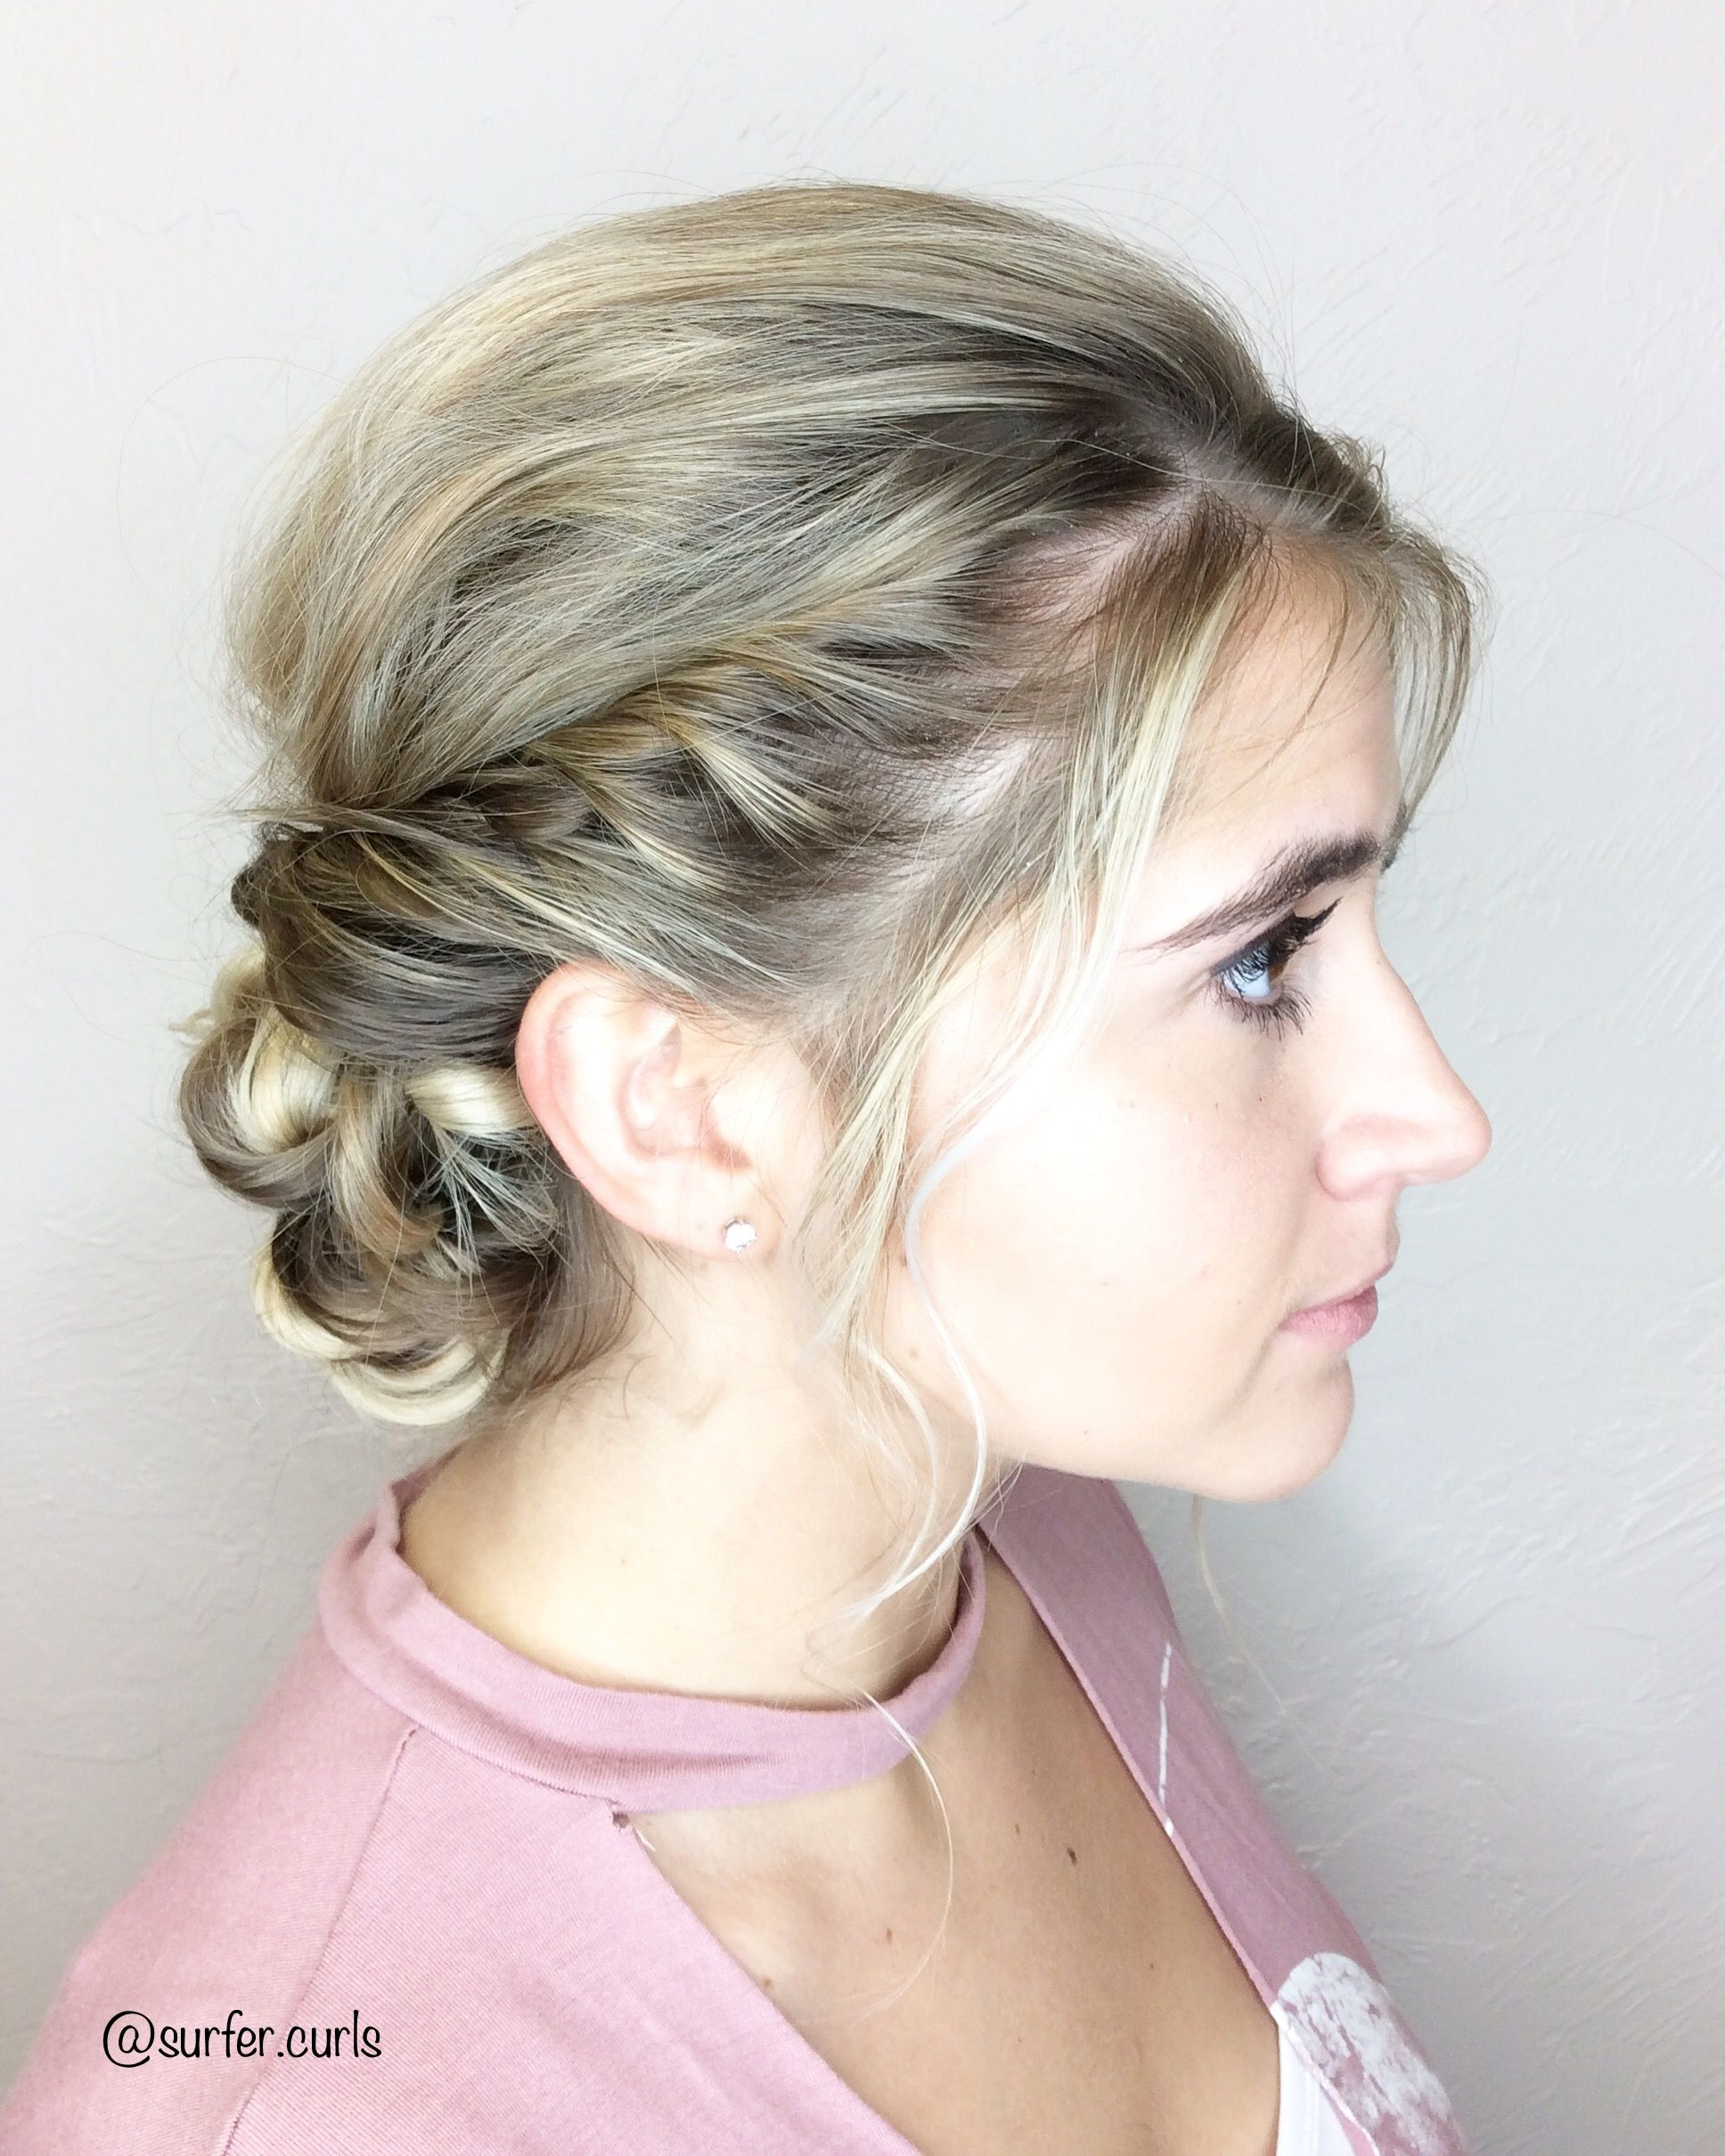 Braided and twisted wedding updo prom updo ultimate wedding hair